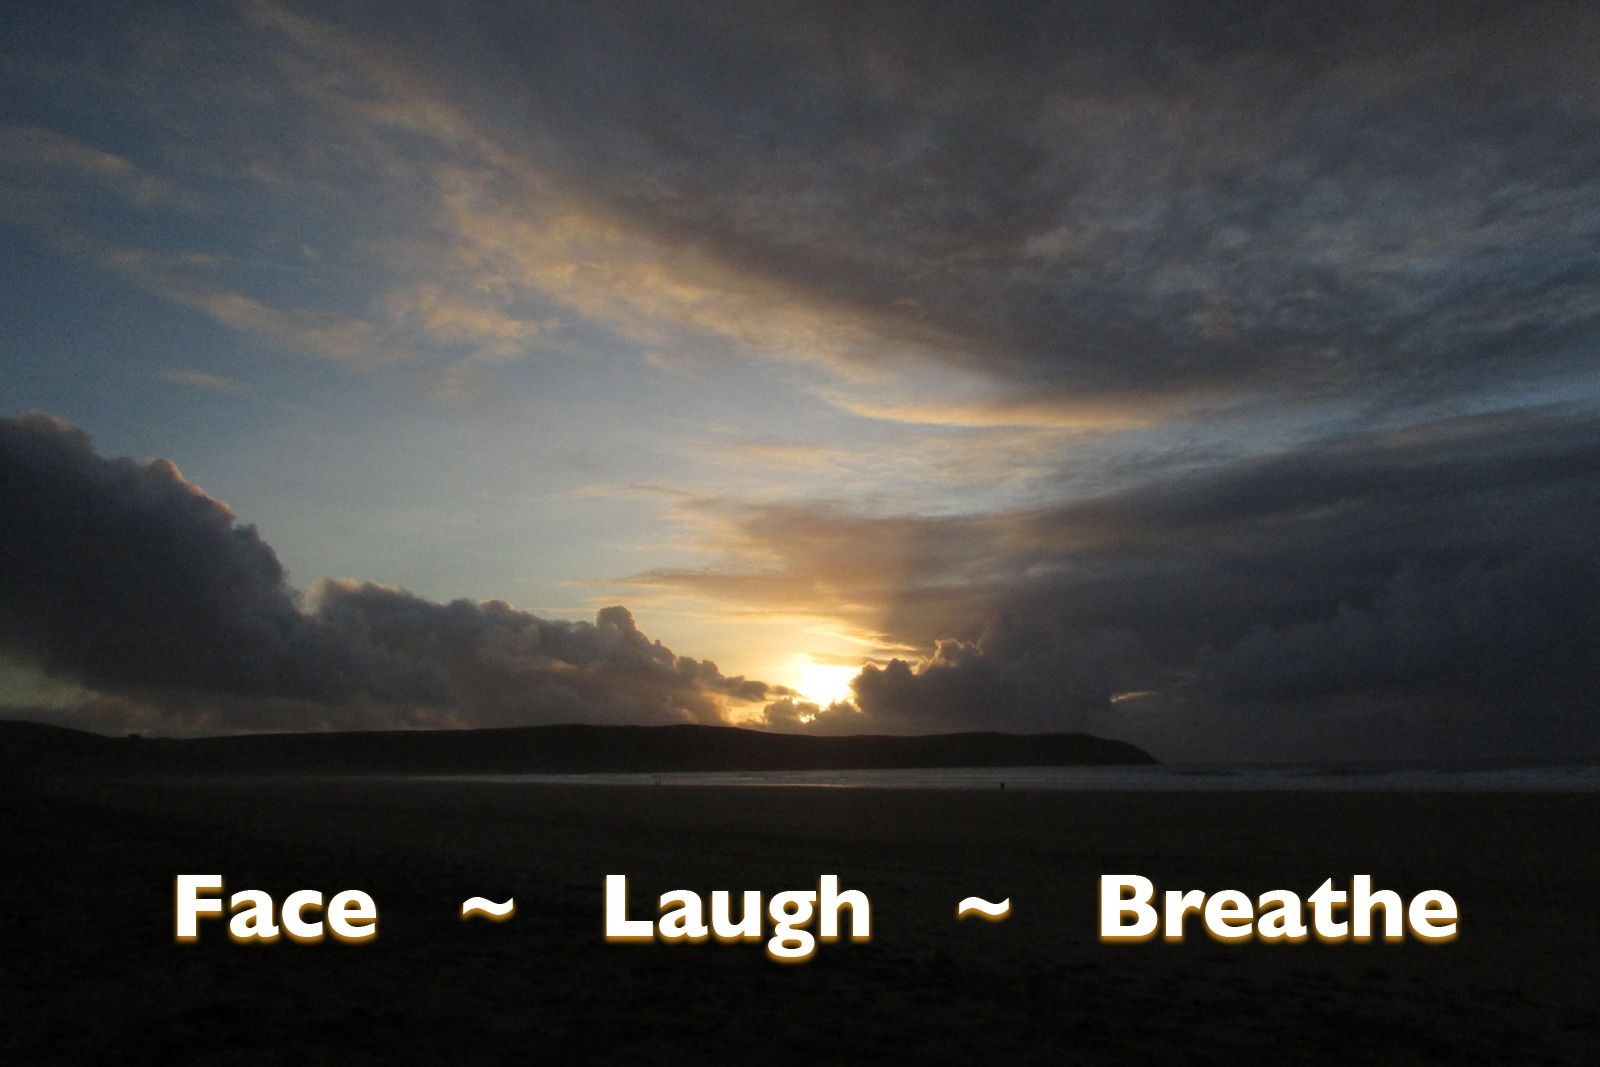 Face ~ Laugh ~ Breathe